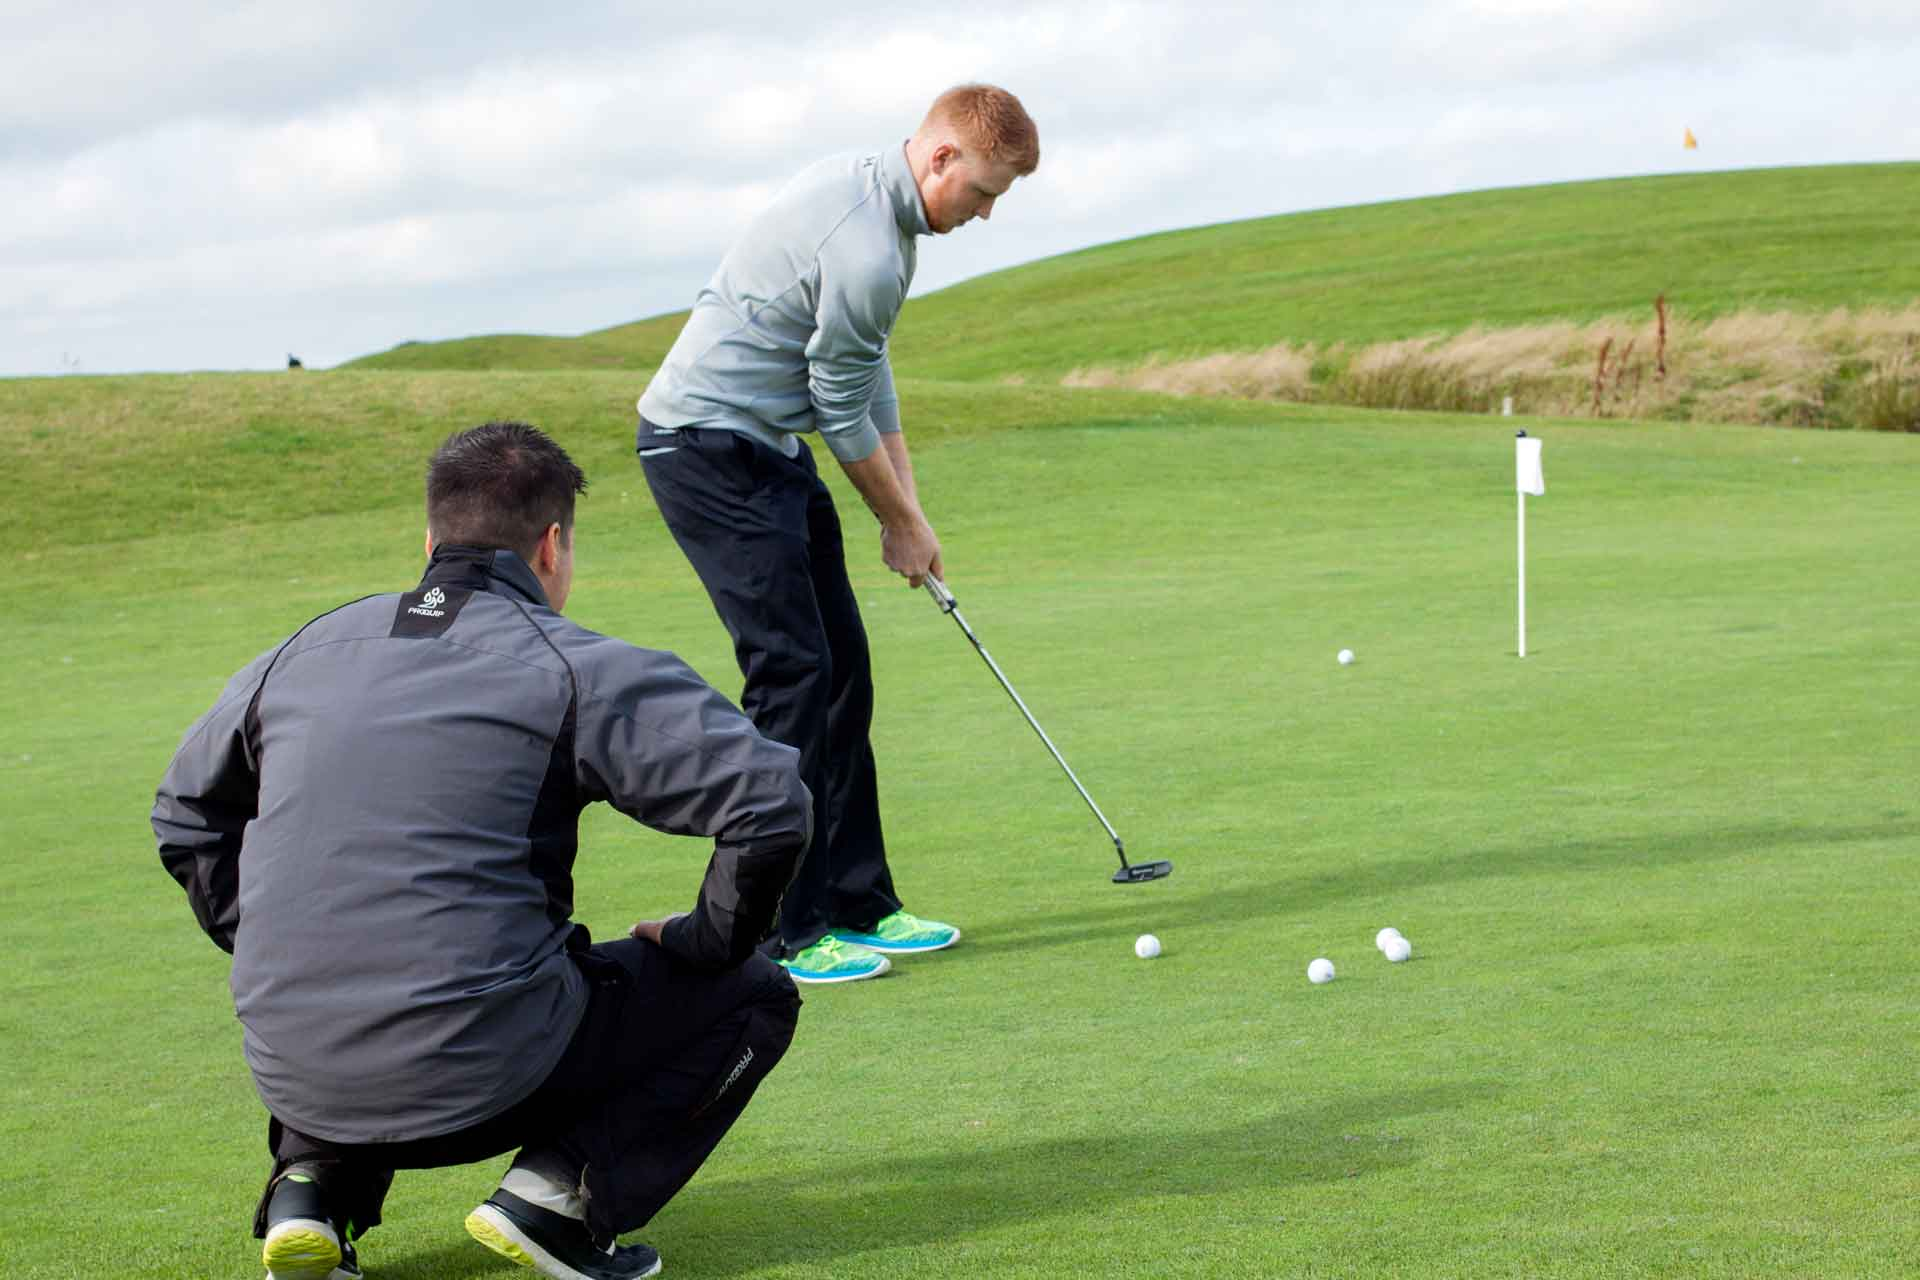 Playsport Golf East Kilbride